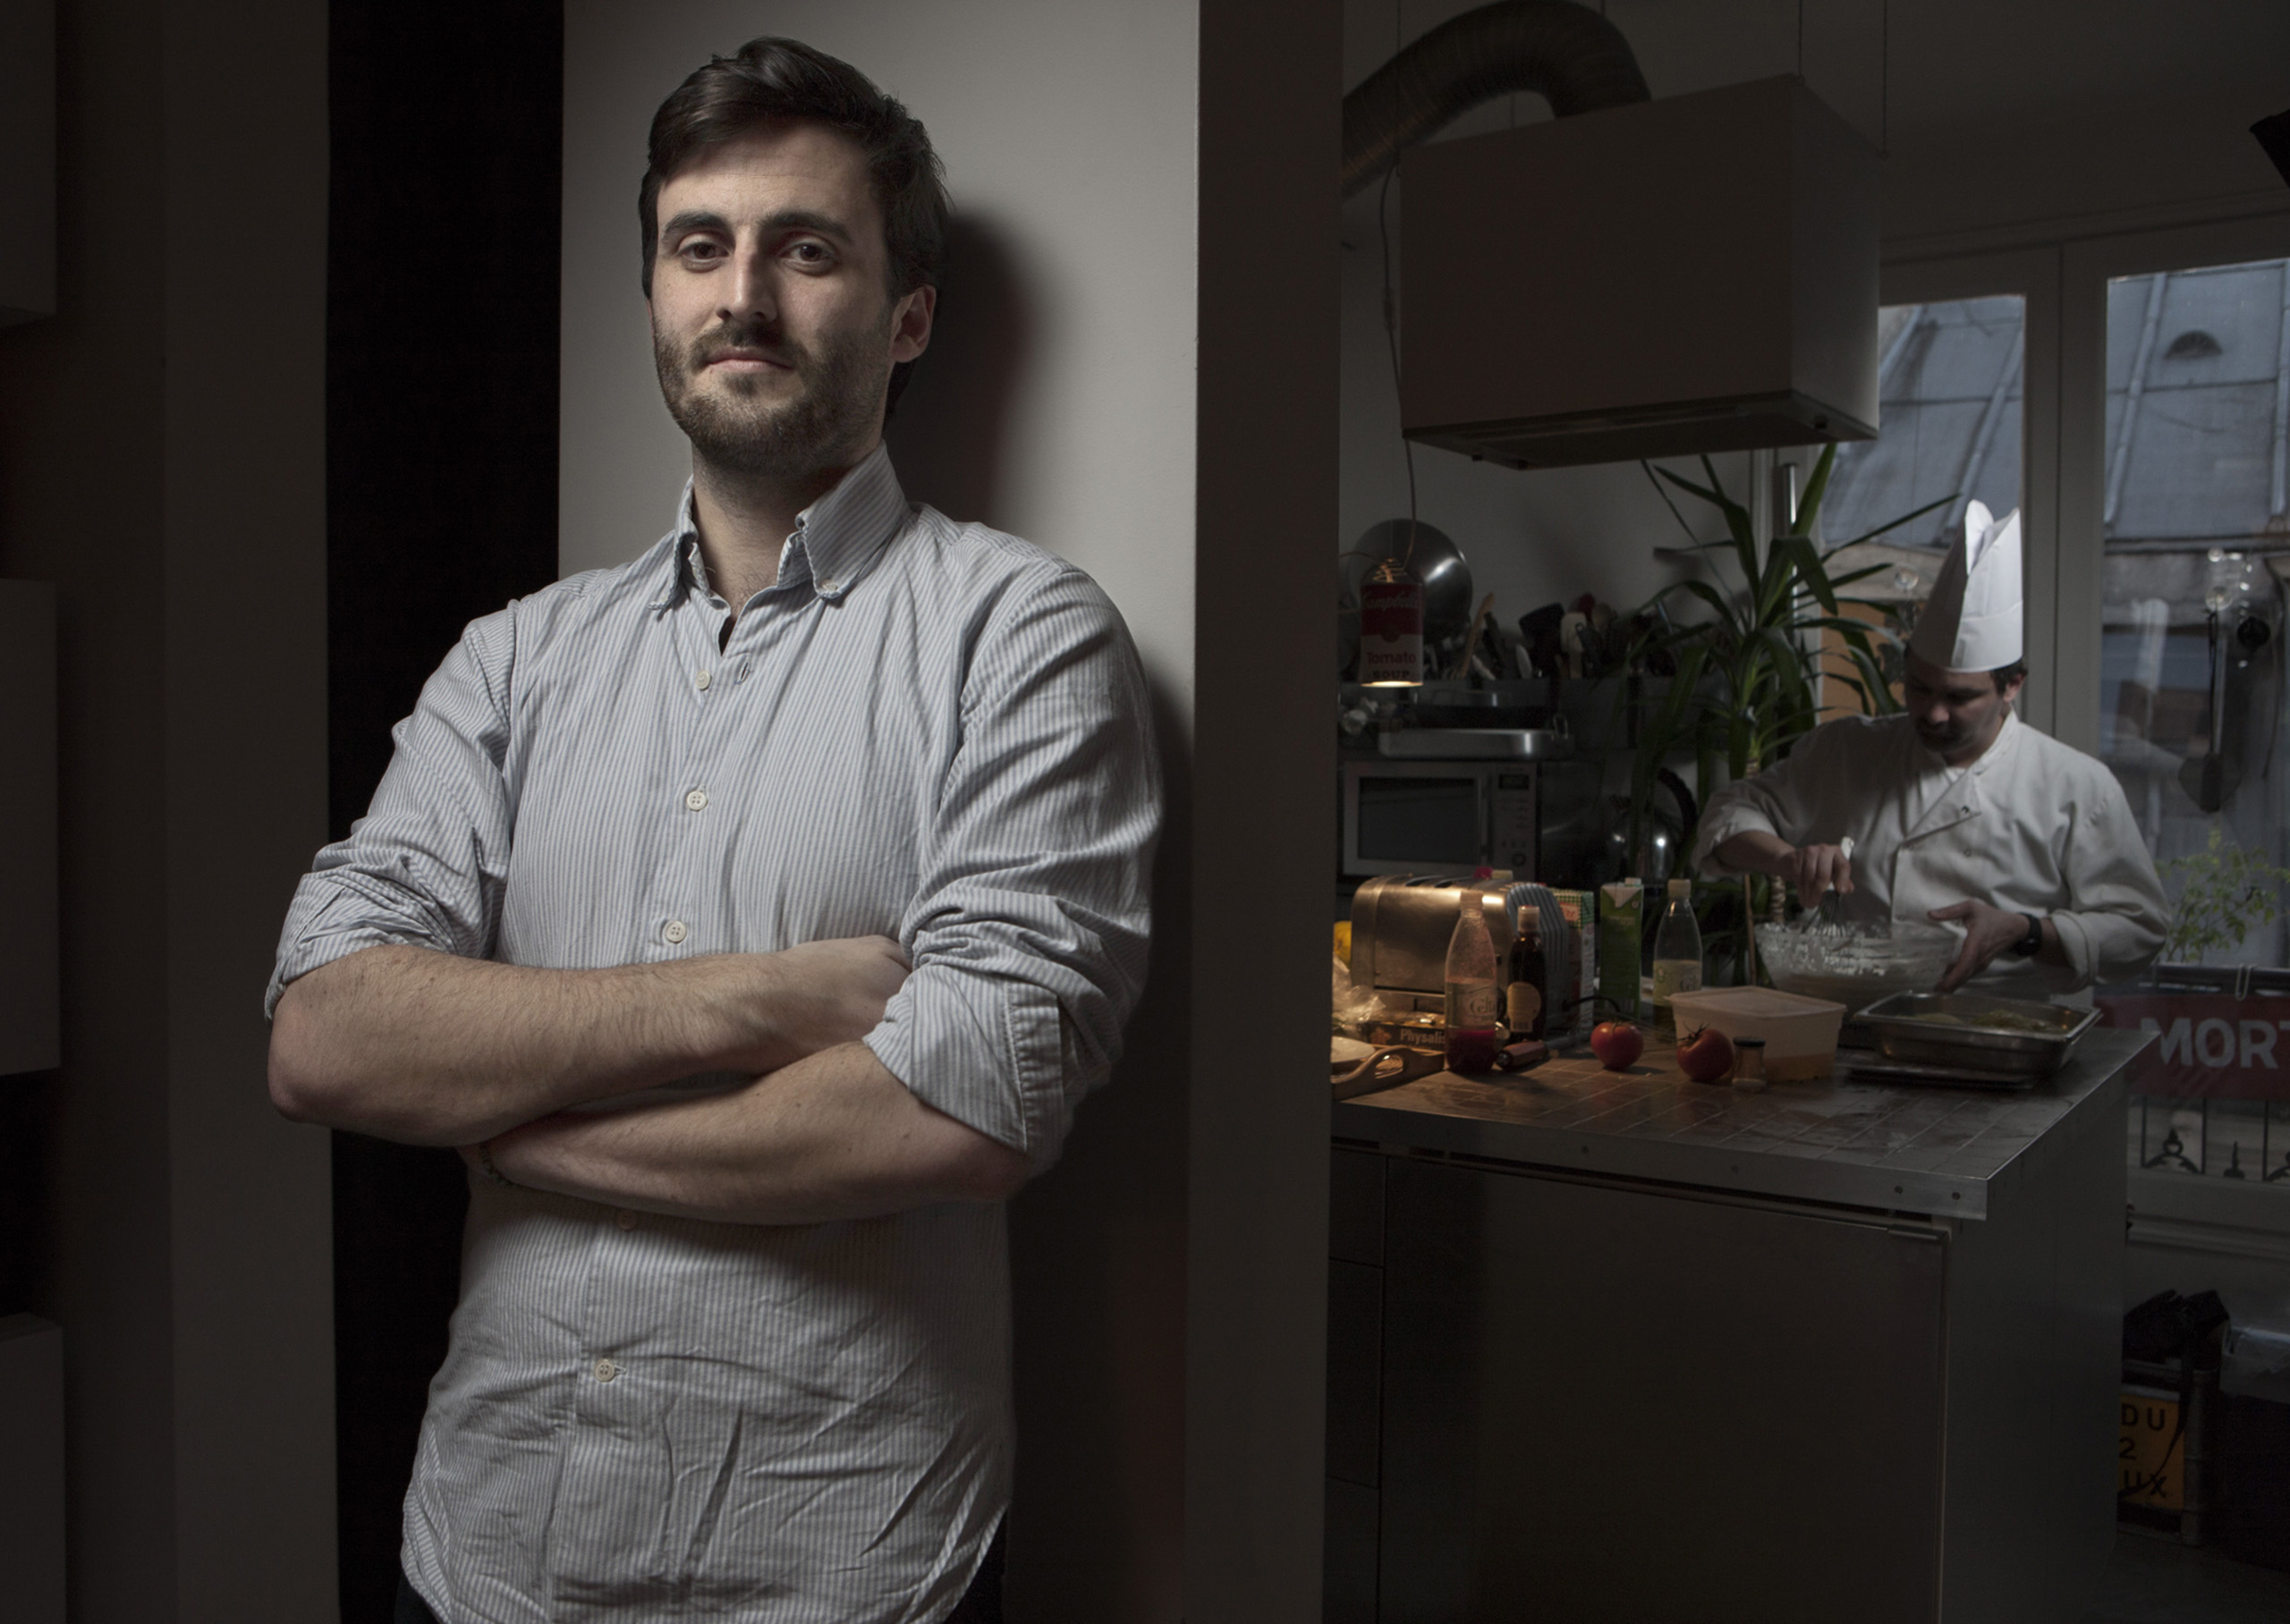 Stephen Leguillon of La Belle Assiette photographed in a Parisian home while testing out the cuisine of a new chef.